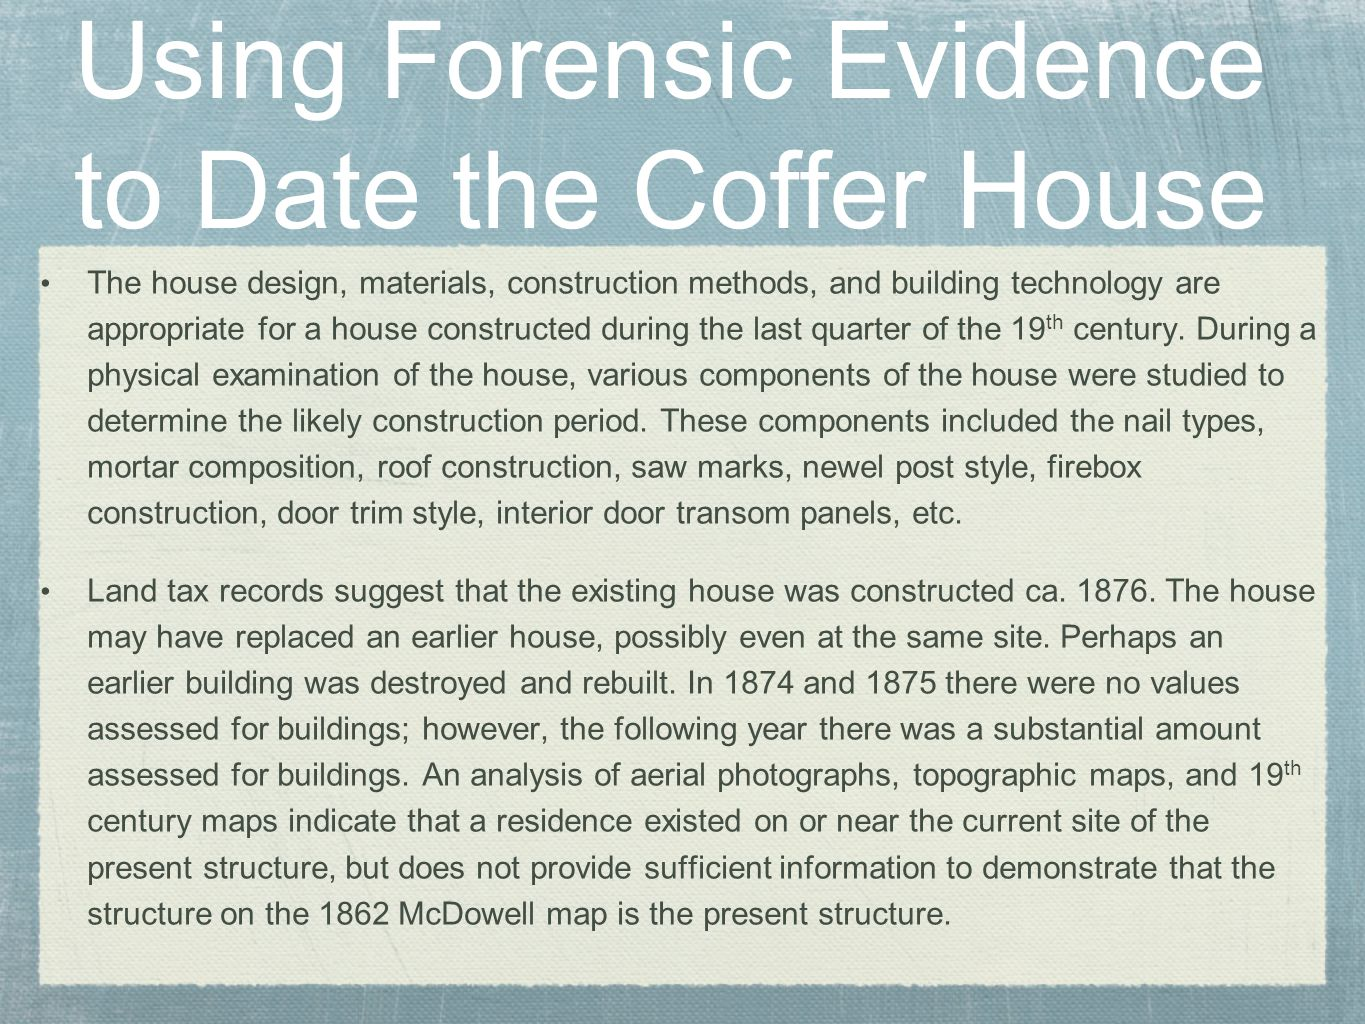 Using Forensic Evidence to Date the Coffer House